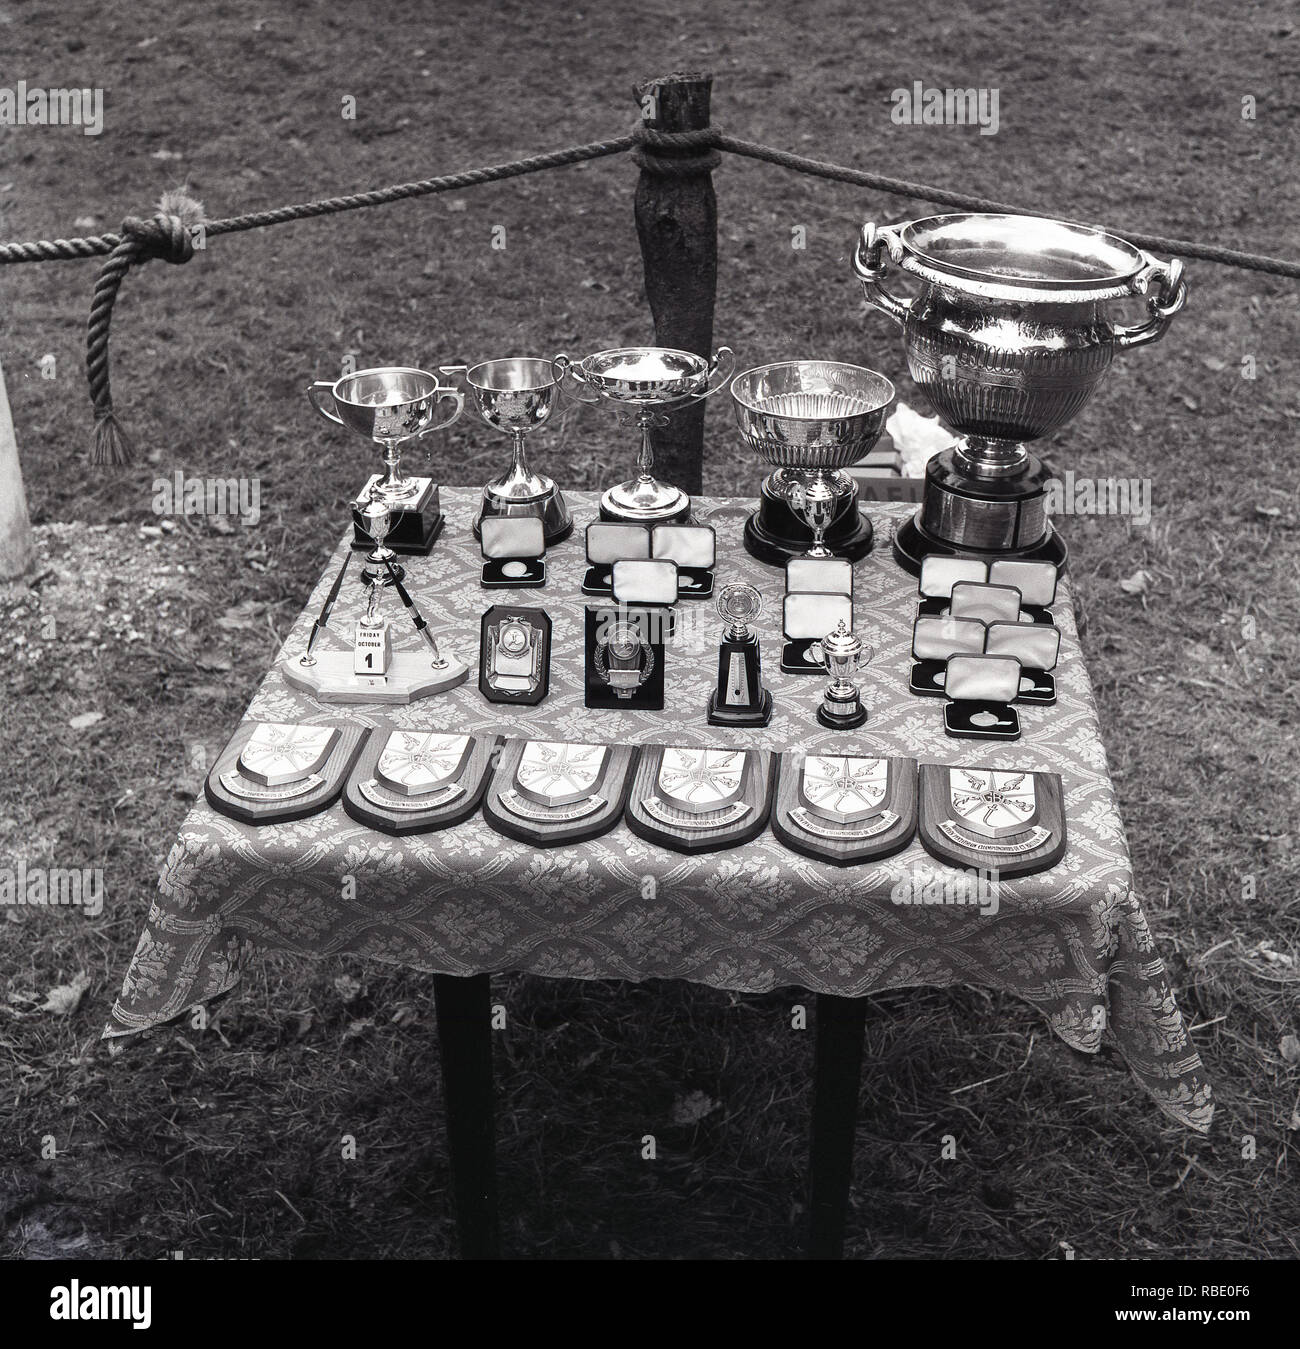 1965, historical, trophies on a table to be presented. These are trophies and prizes for the Modern Pentathlon Championships of Great Britain. Track and field sport in Britain in this era was amateur  and a trophy and plaque was the reward for the competitors taking part. - Stock Image